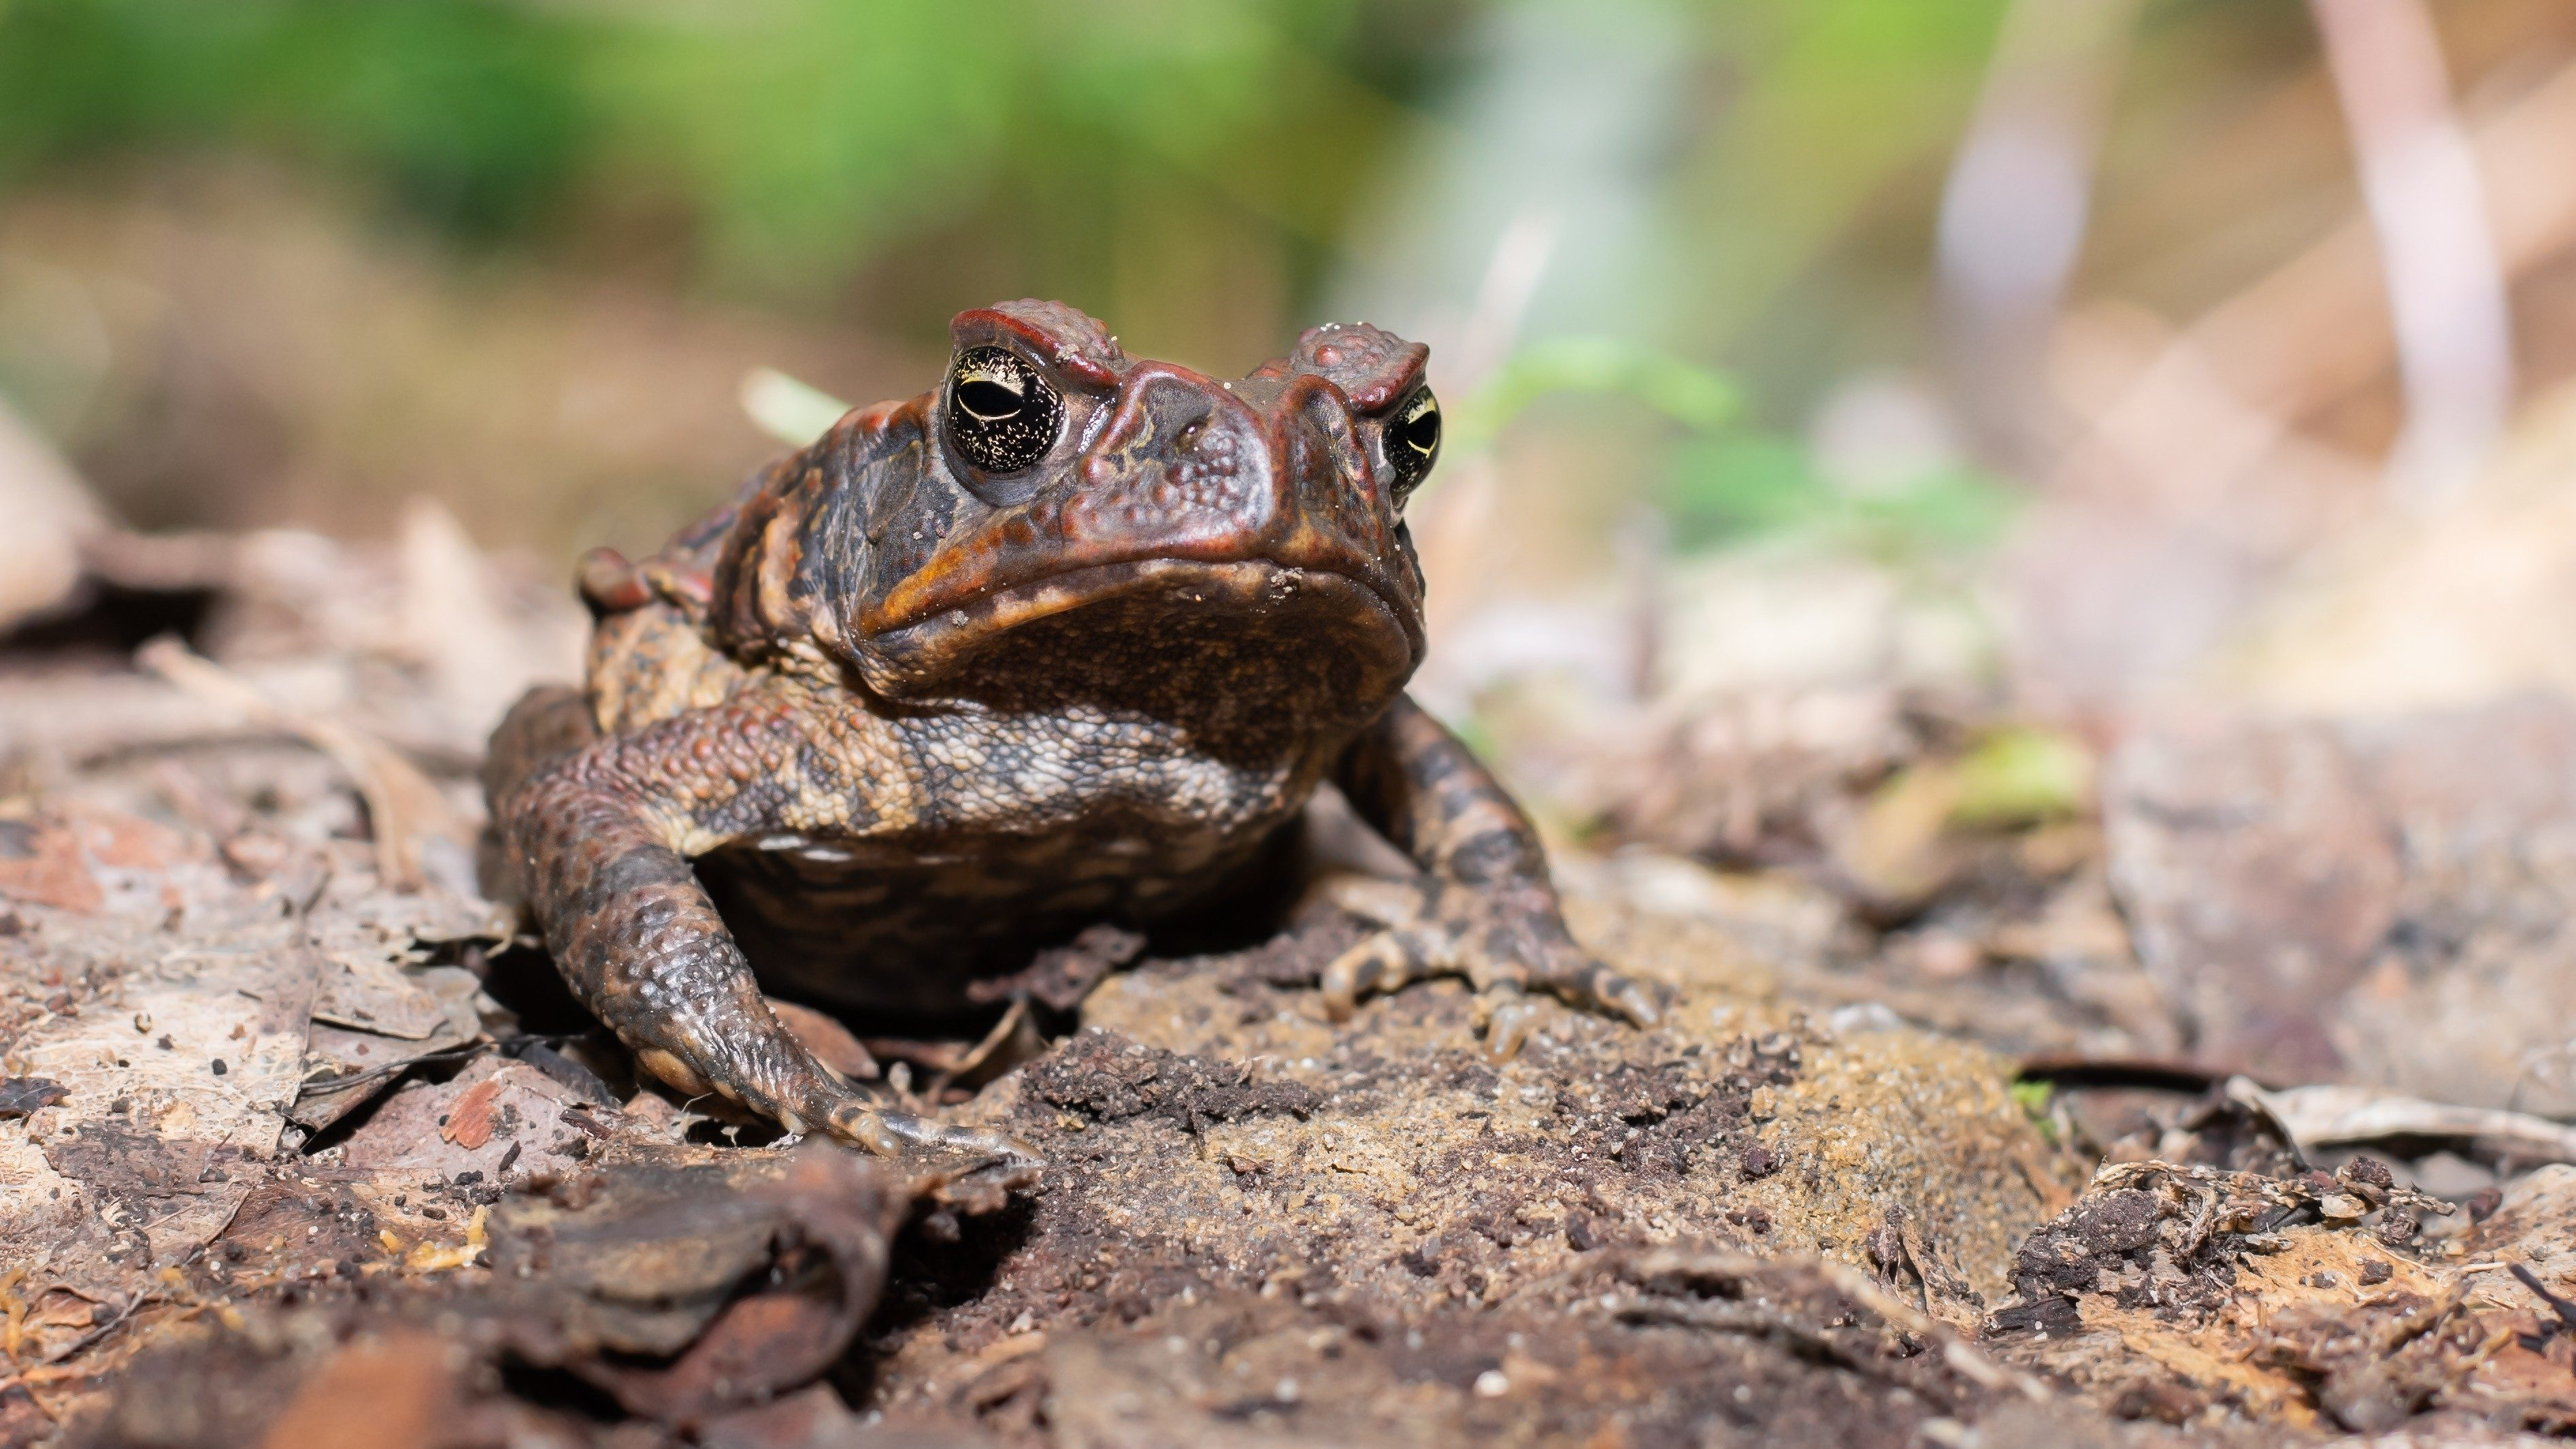 Photos of wild frogs from Australia - Cane Toad